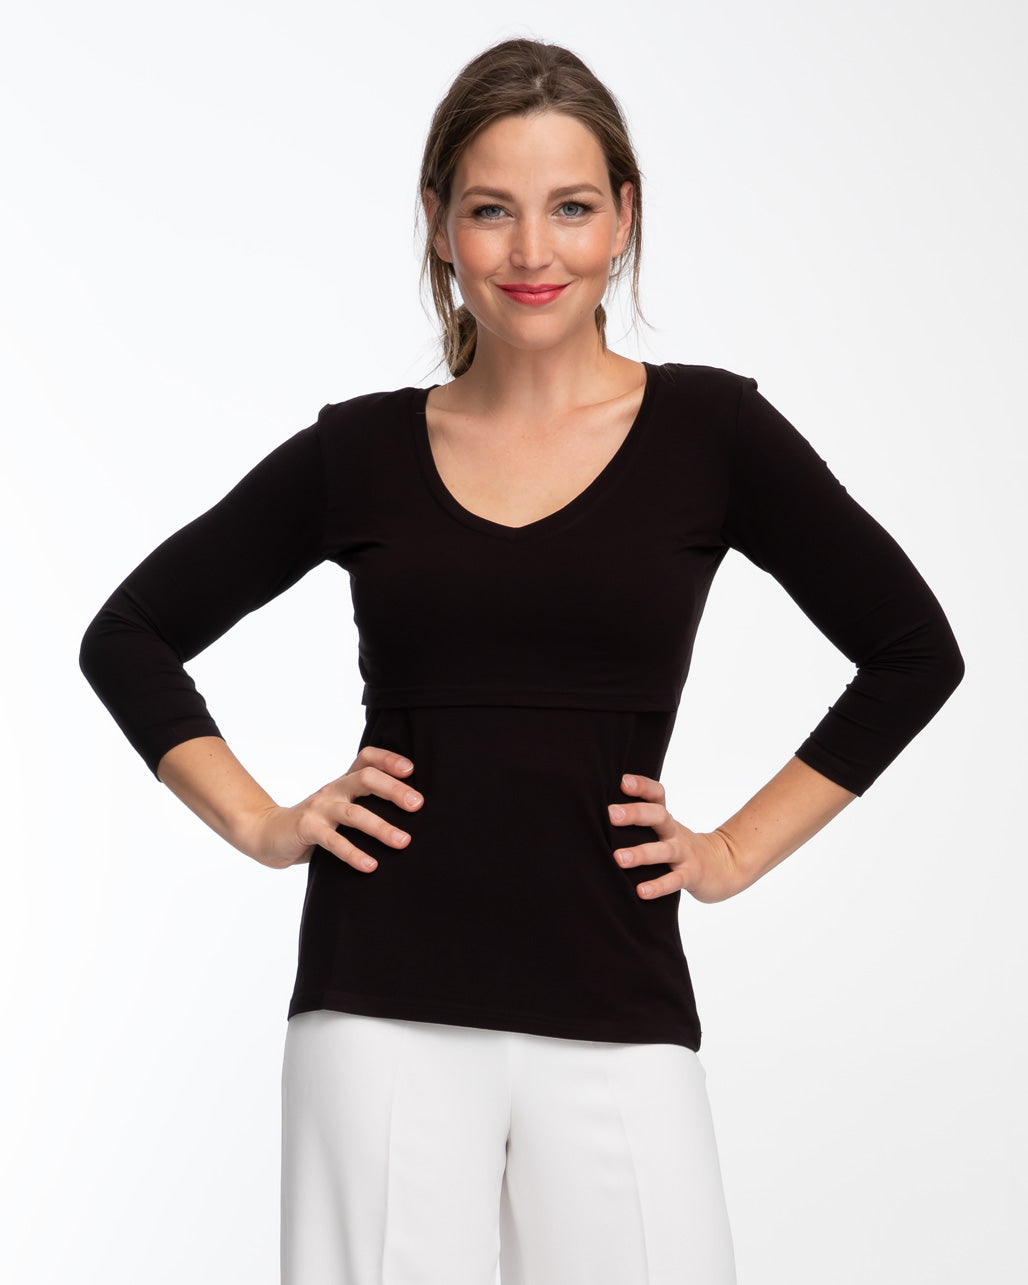 fa7b634a70488 Black v-neck bamboo nursing top with 3/4 sleeves by Peachymama 1